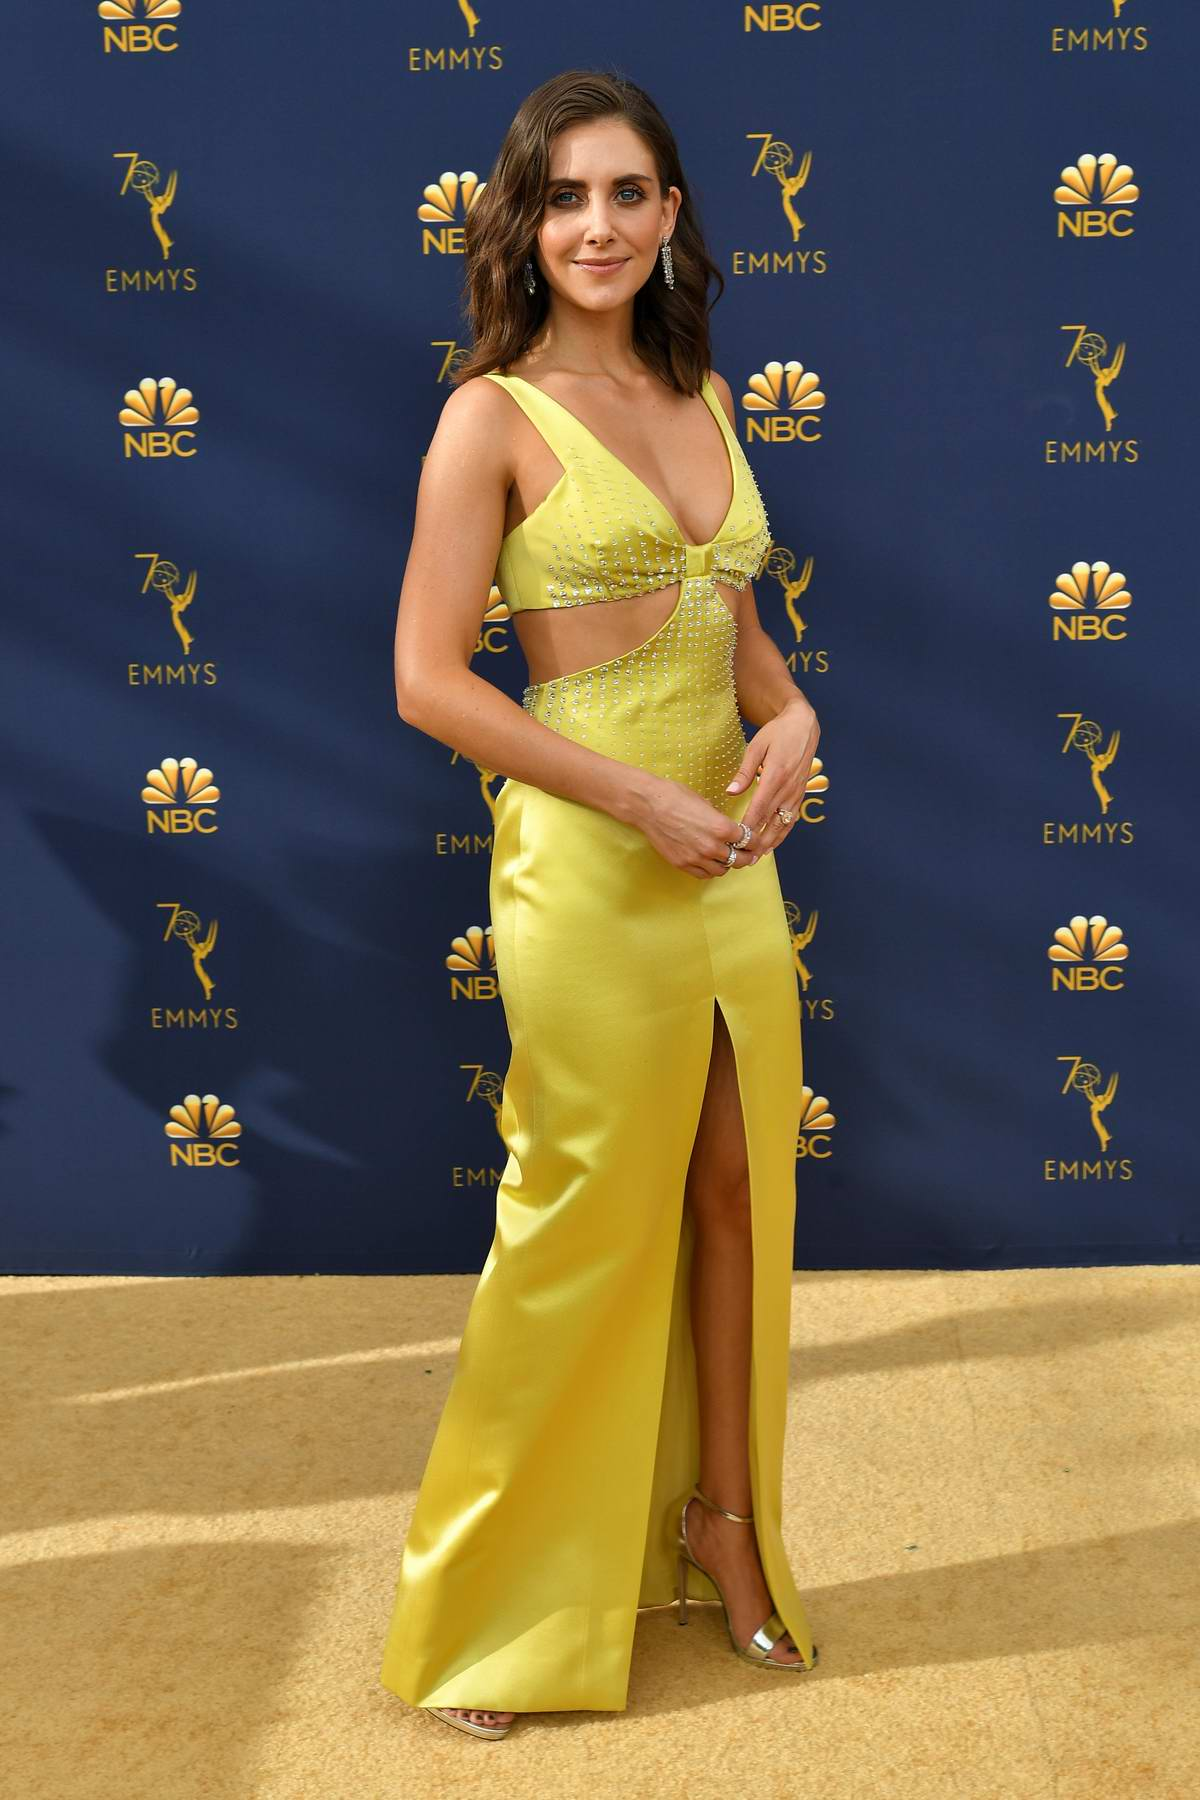 Alison Brie attends the 70th Primetime EMMY Awards (EMMYS 2018) at Microsoft Theater in Los Angeles